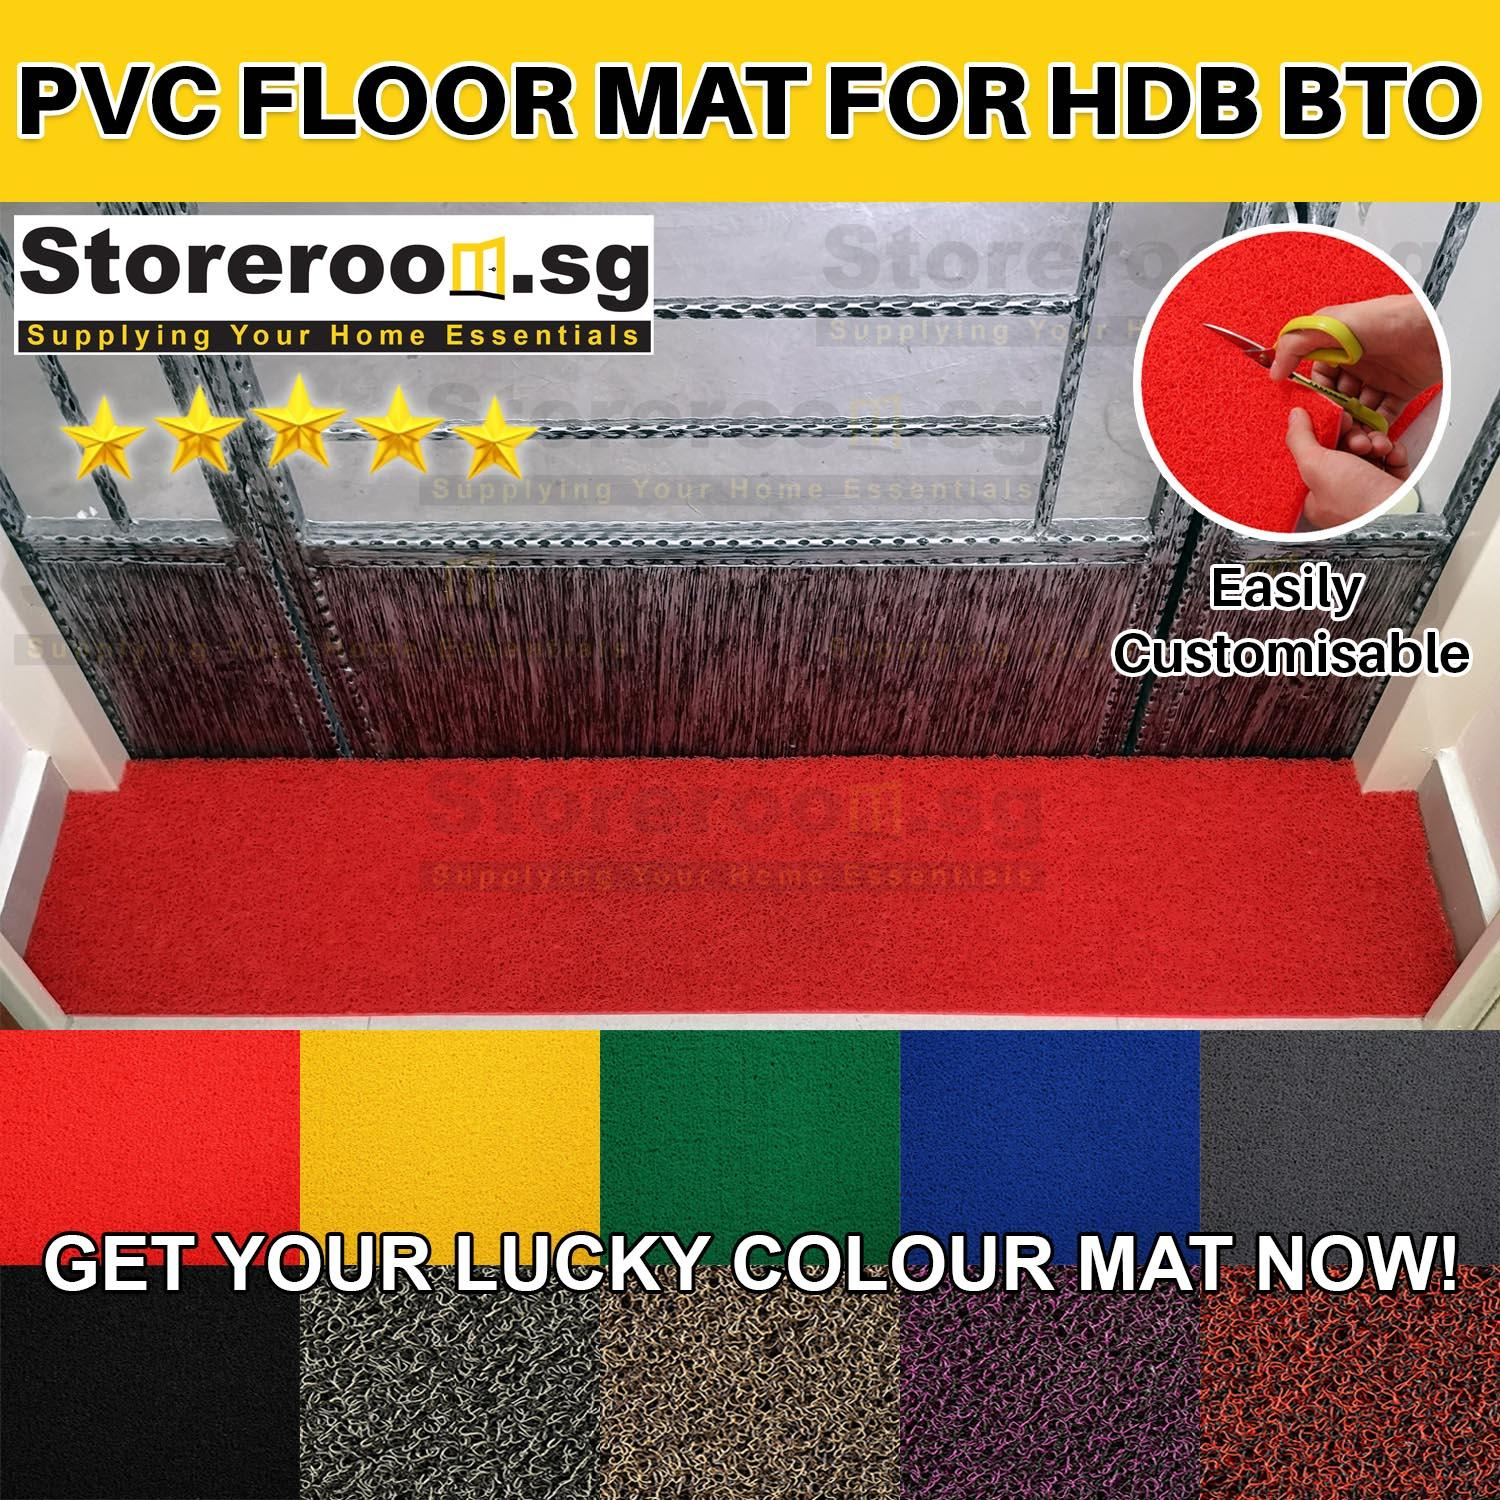 Long PVC Coil Floor Mat for HDB BTO - 120cm x 25cm